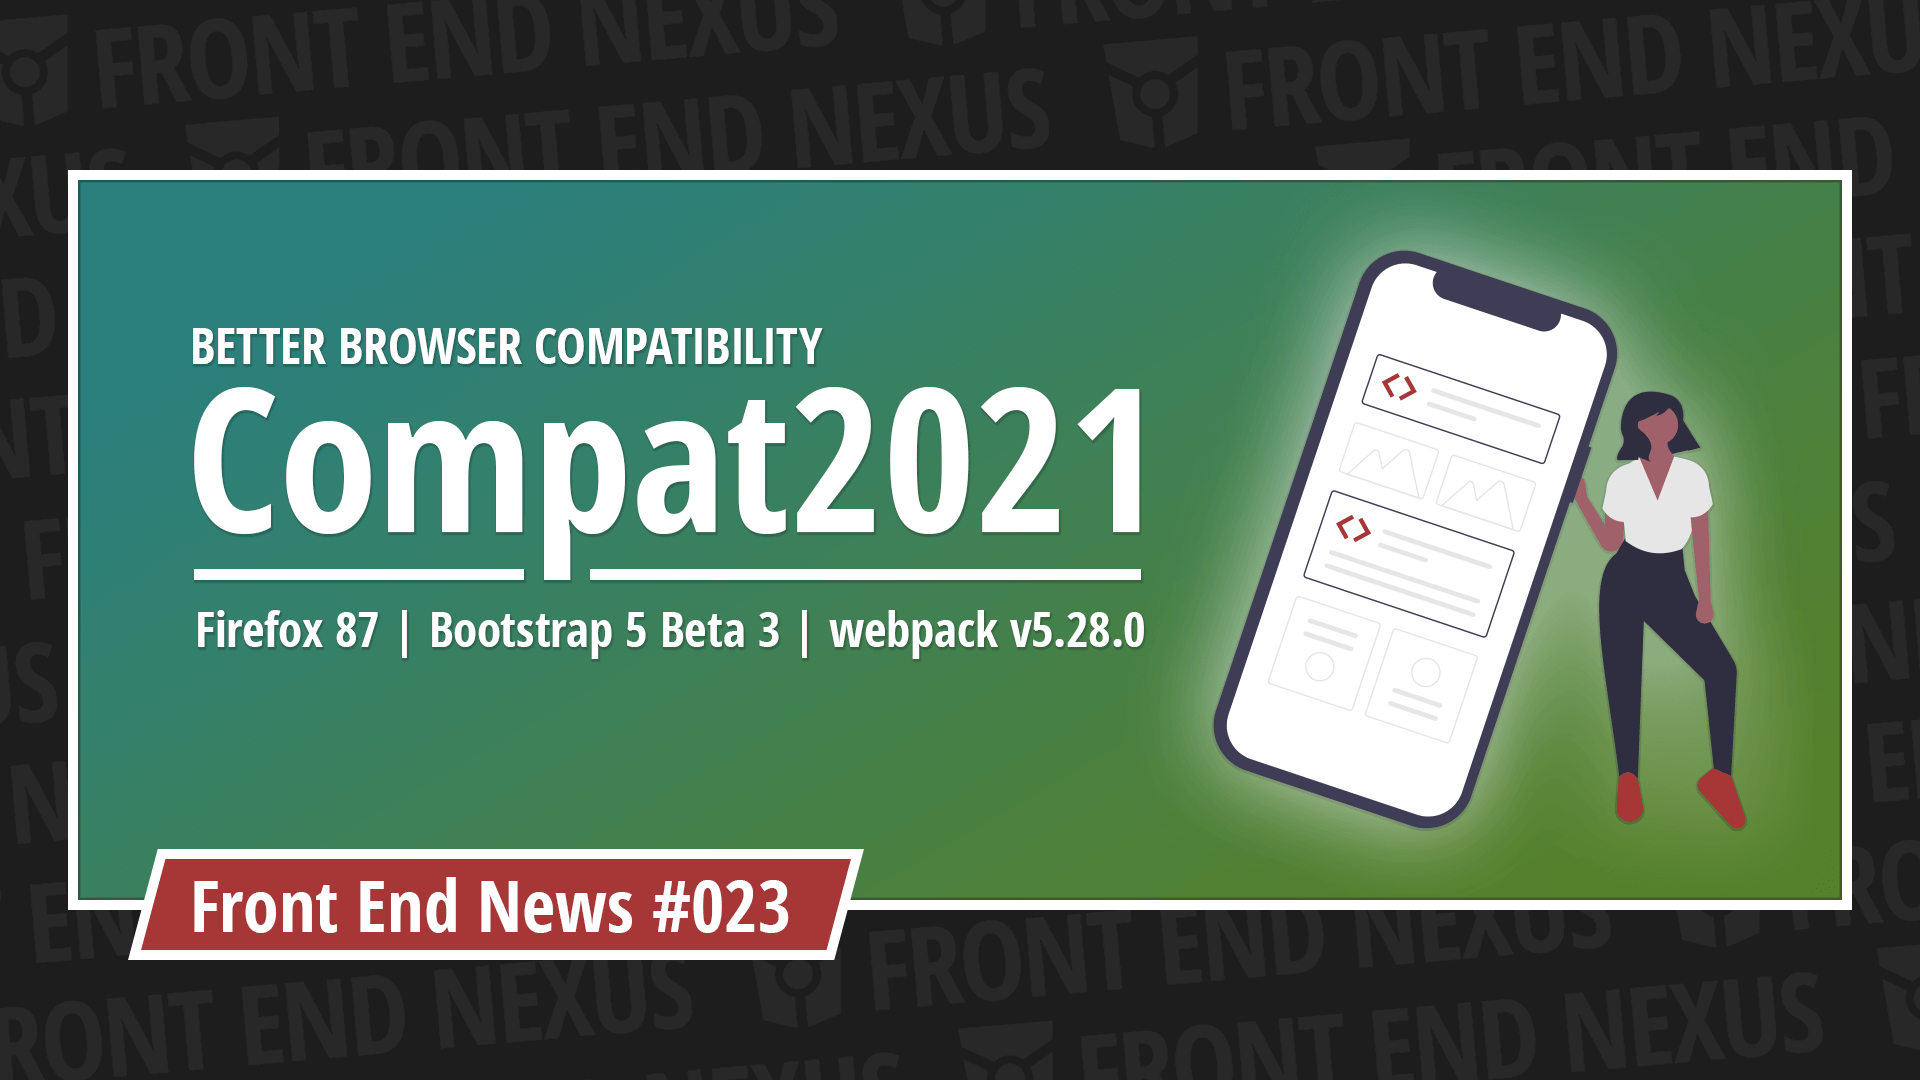 Compat2021 for better developer satisfaction, Firefox 87, and Bootstrap 5 Beta 3 | Front End News #023